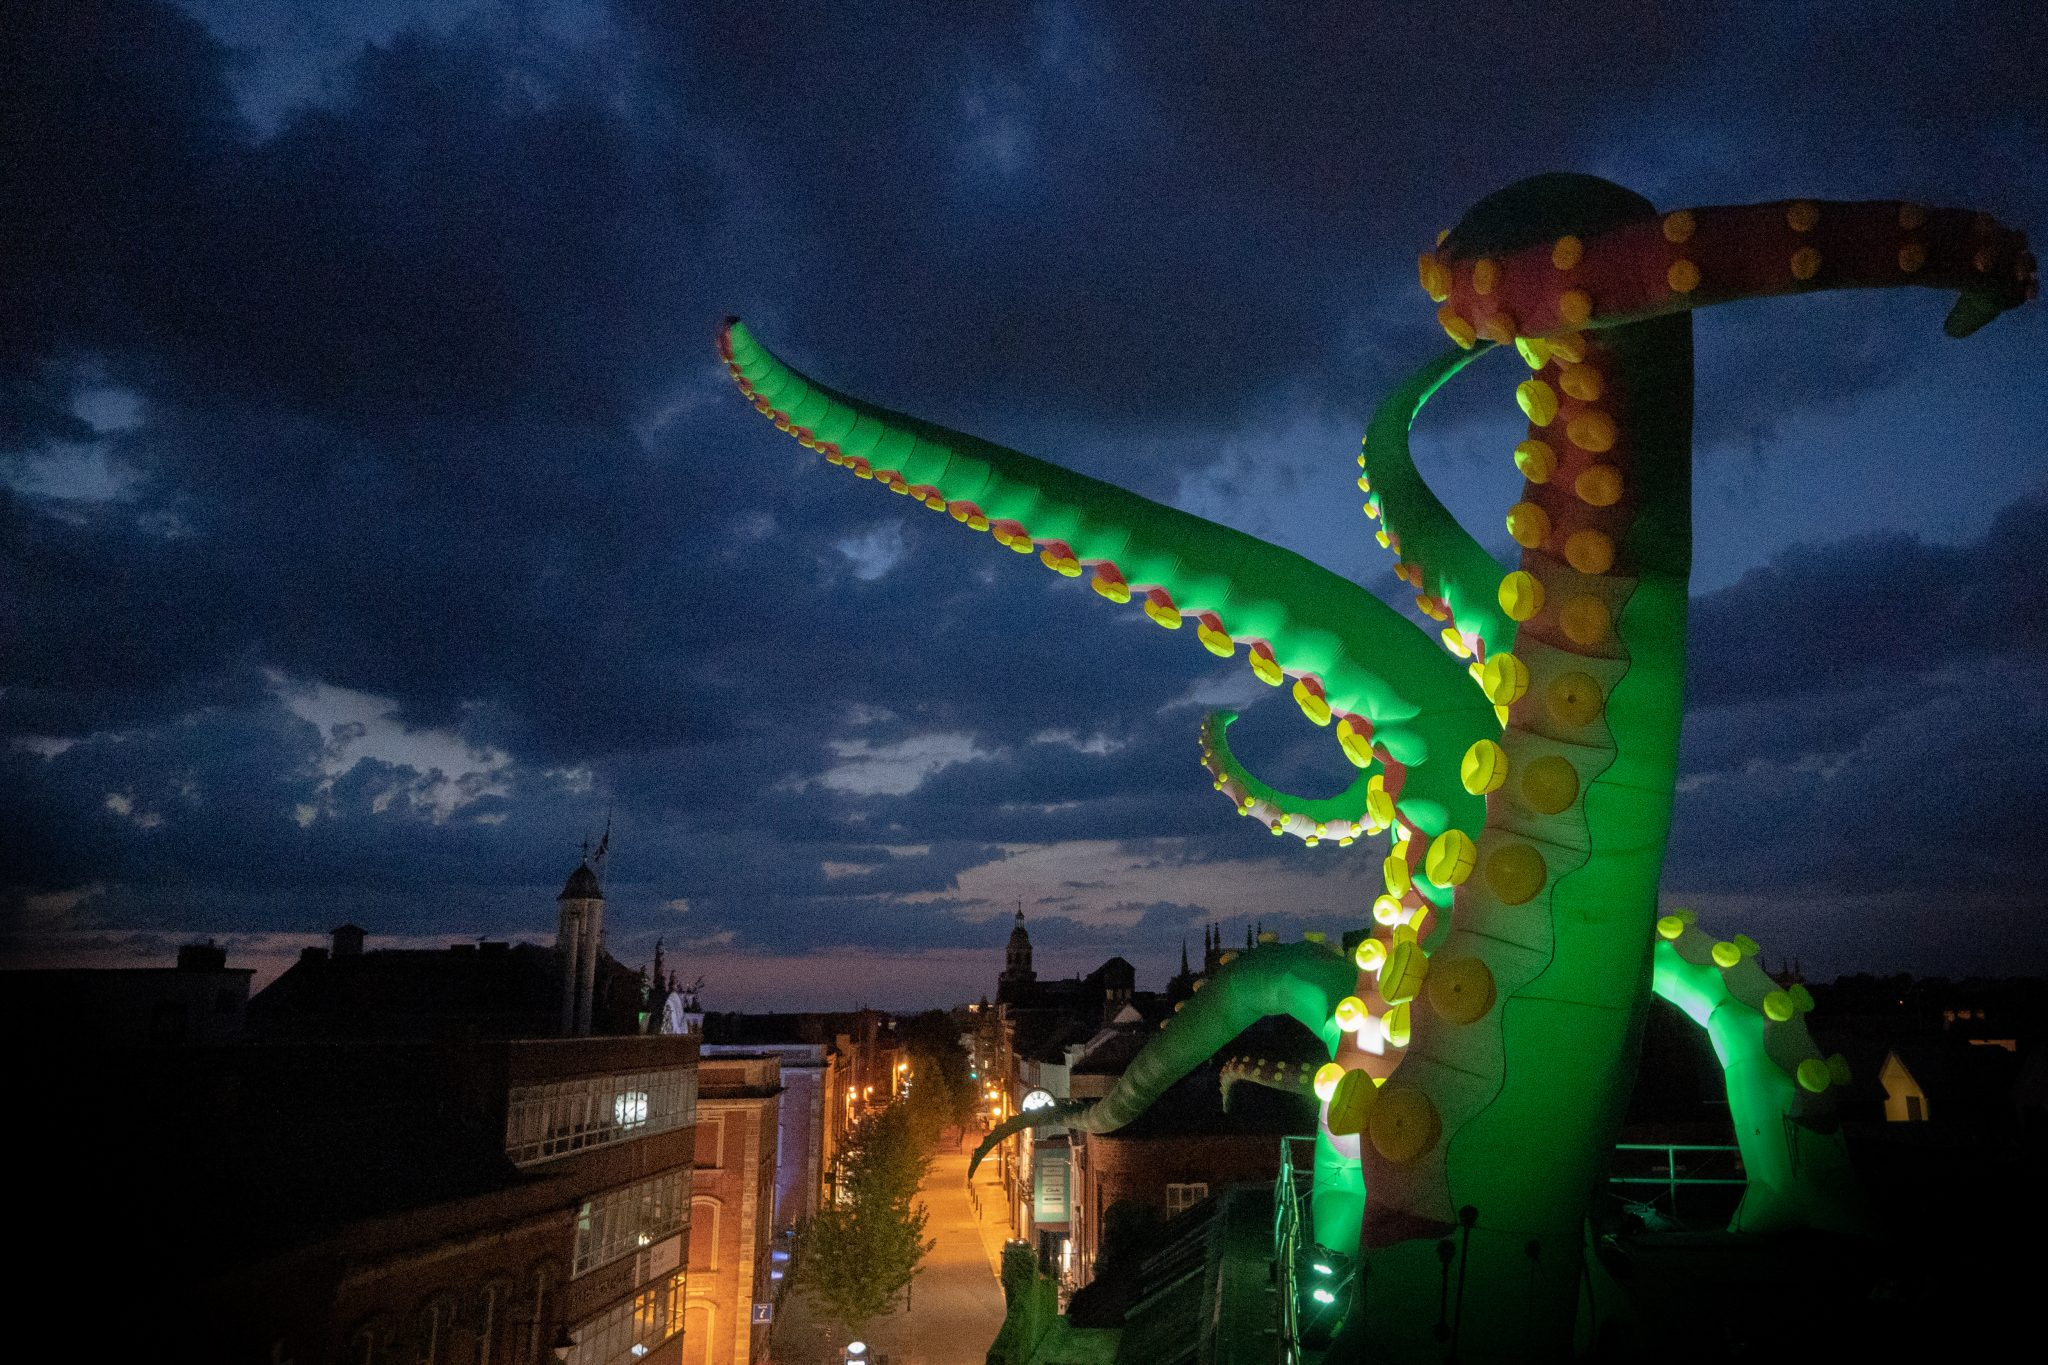 Image Description: : Photo taken at night from the roof of a building where large green inflatable tentacles are lit up and are reaching out in different directions. Below you can see the high street shops lit by street lights.